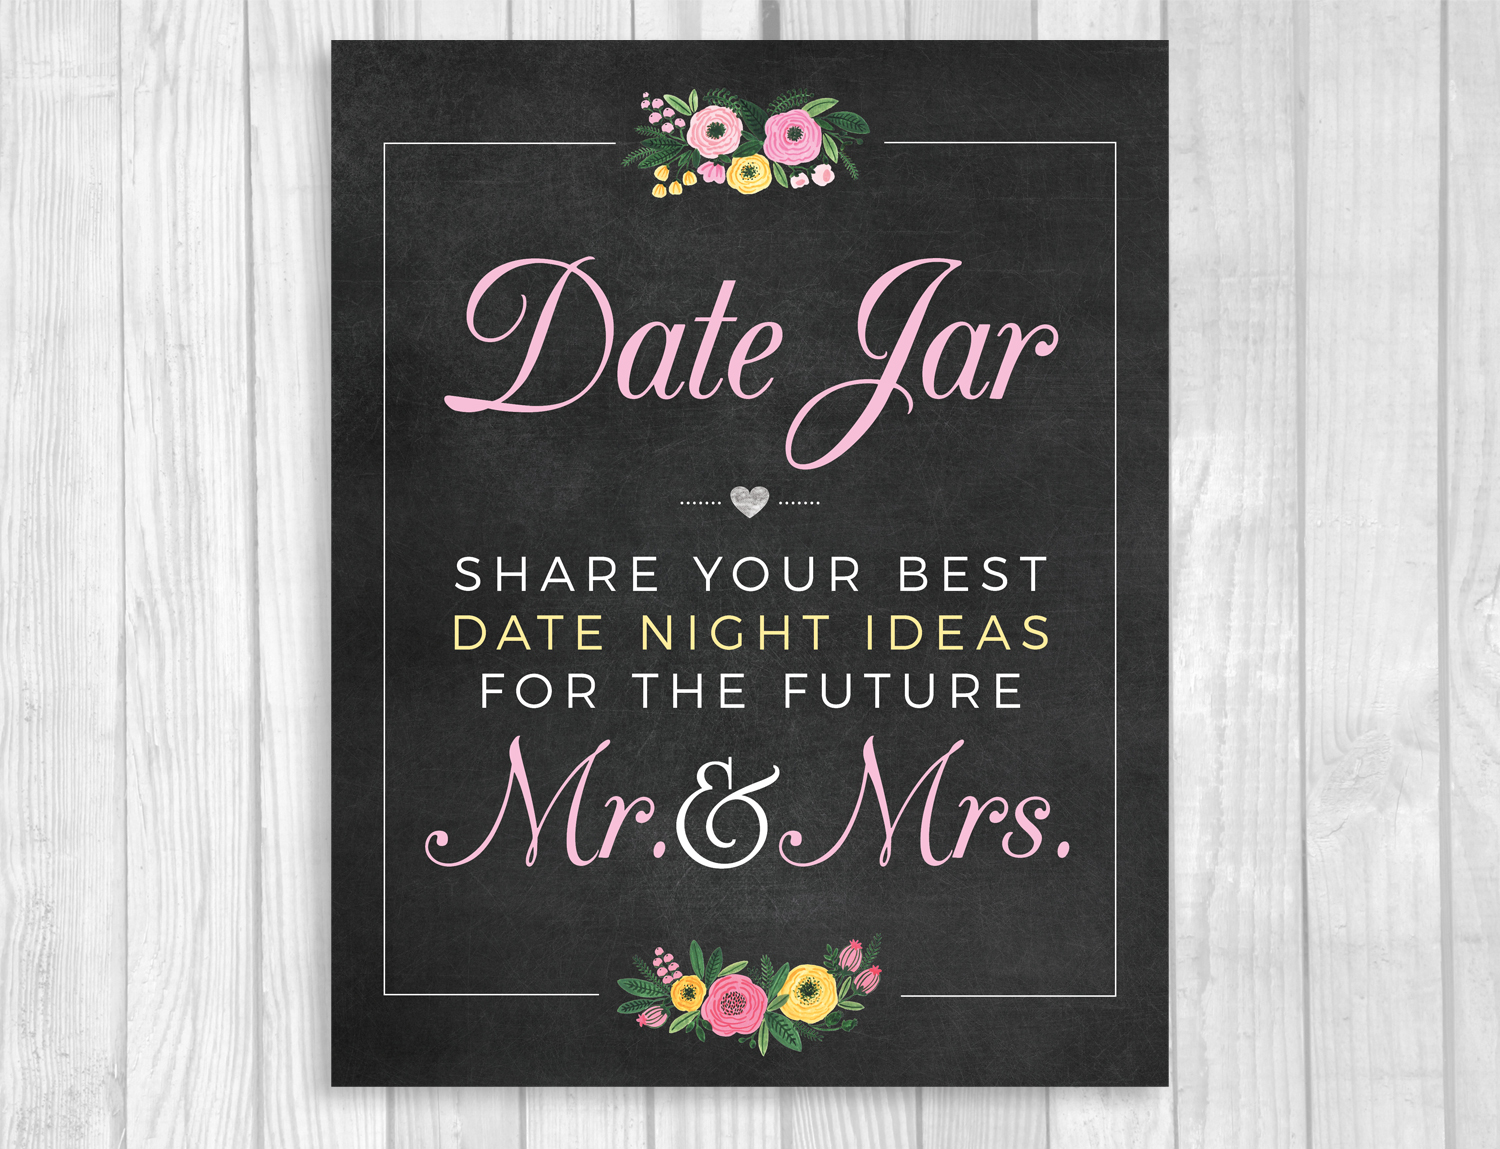 photograph regarding Date Night Jar Printable identify Day Jar Printable Bridal Shower Chalkboard Indication with Purple